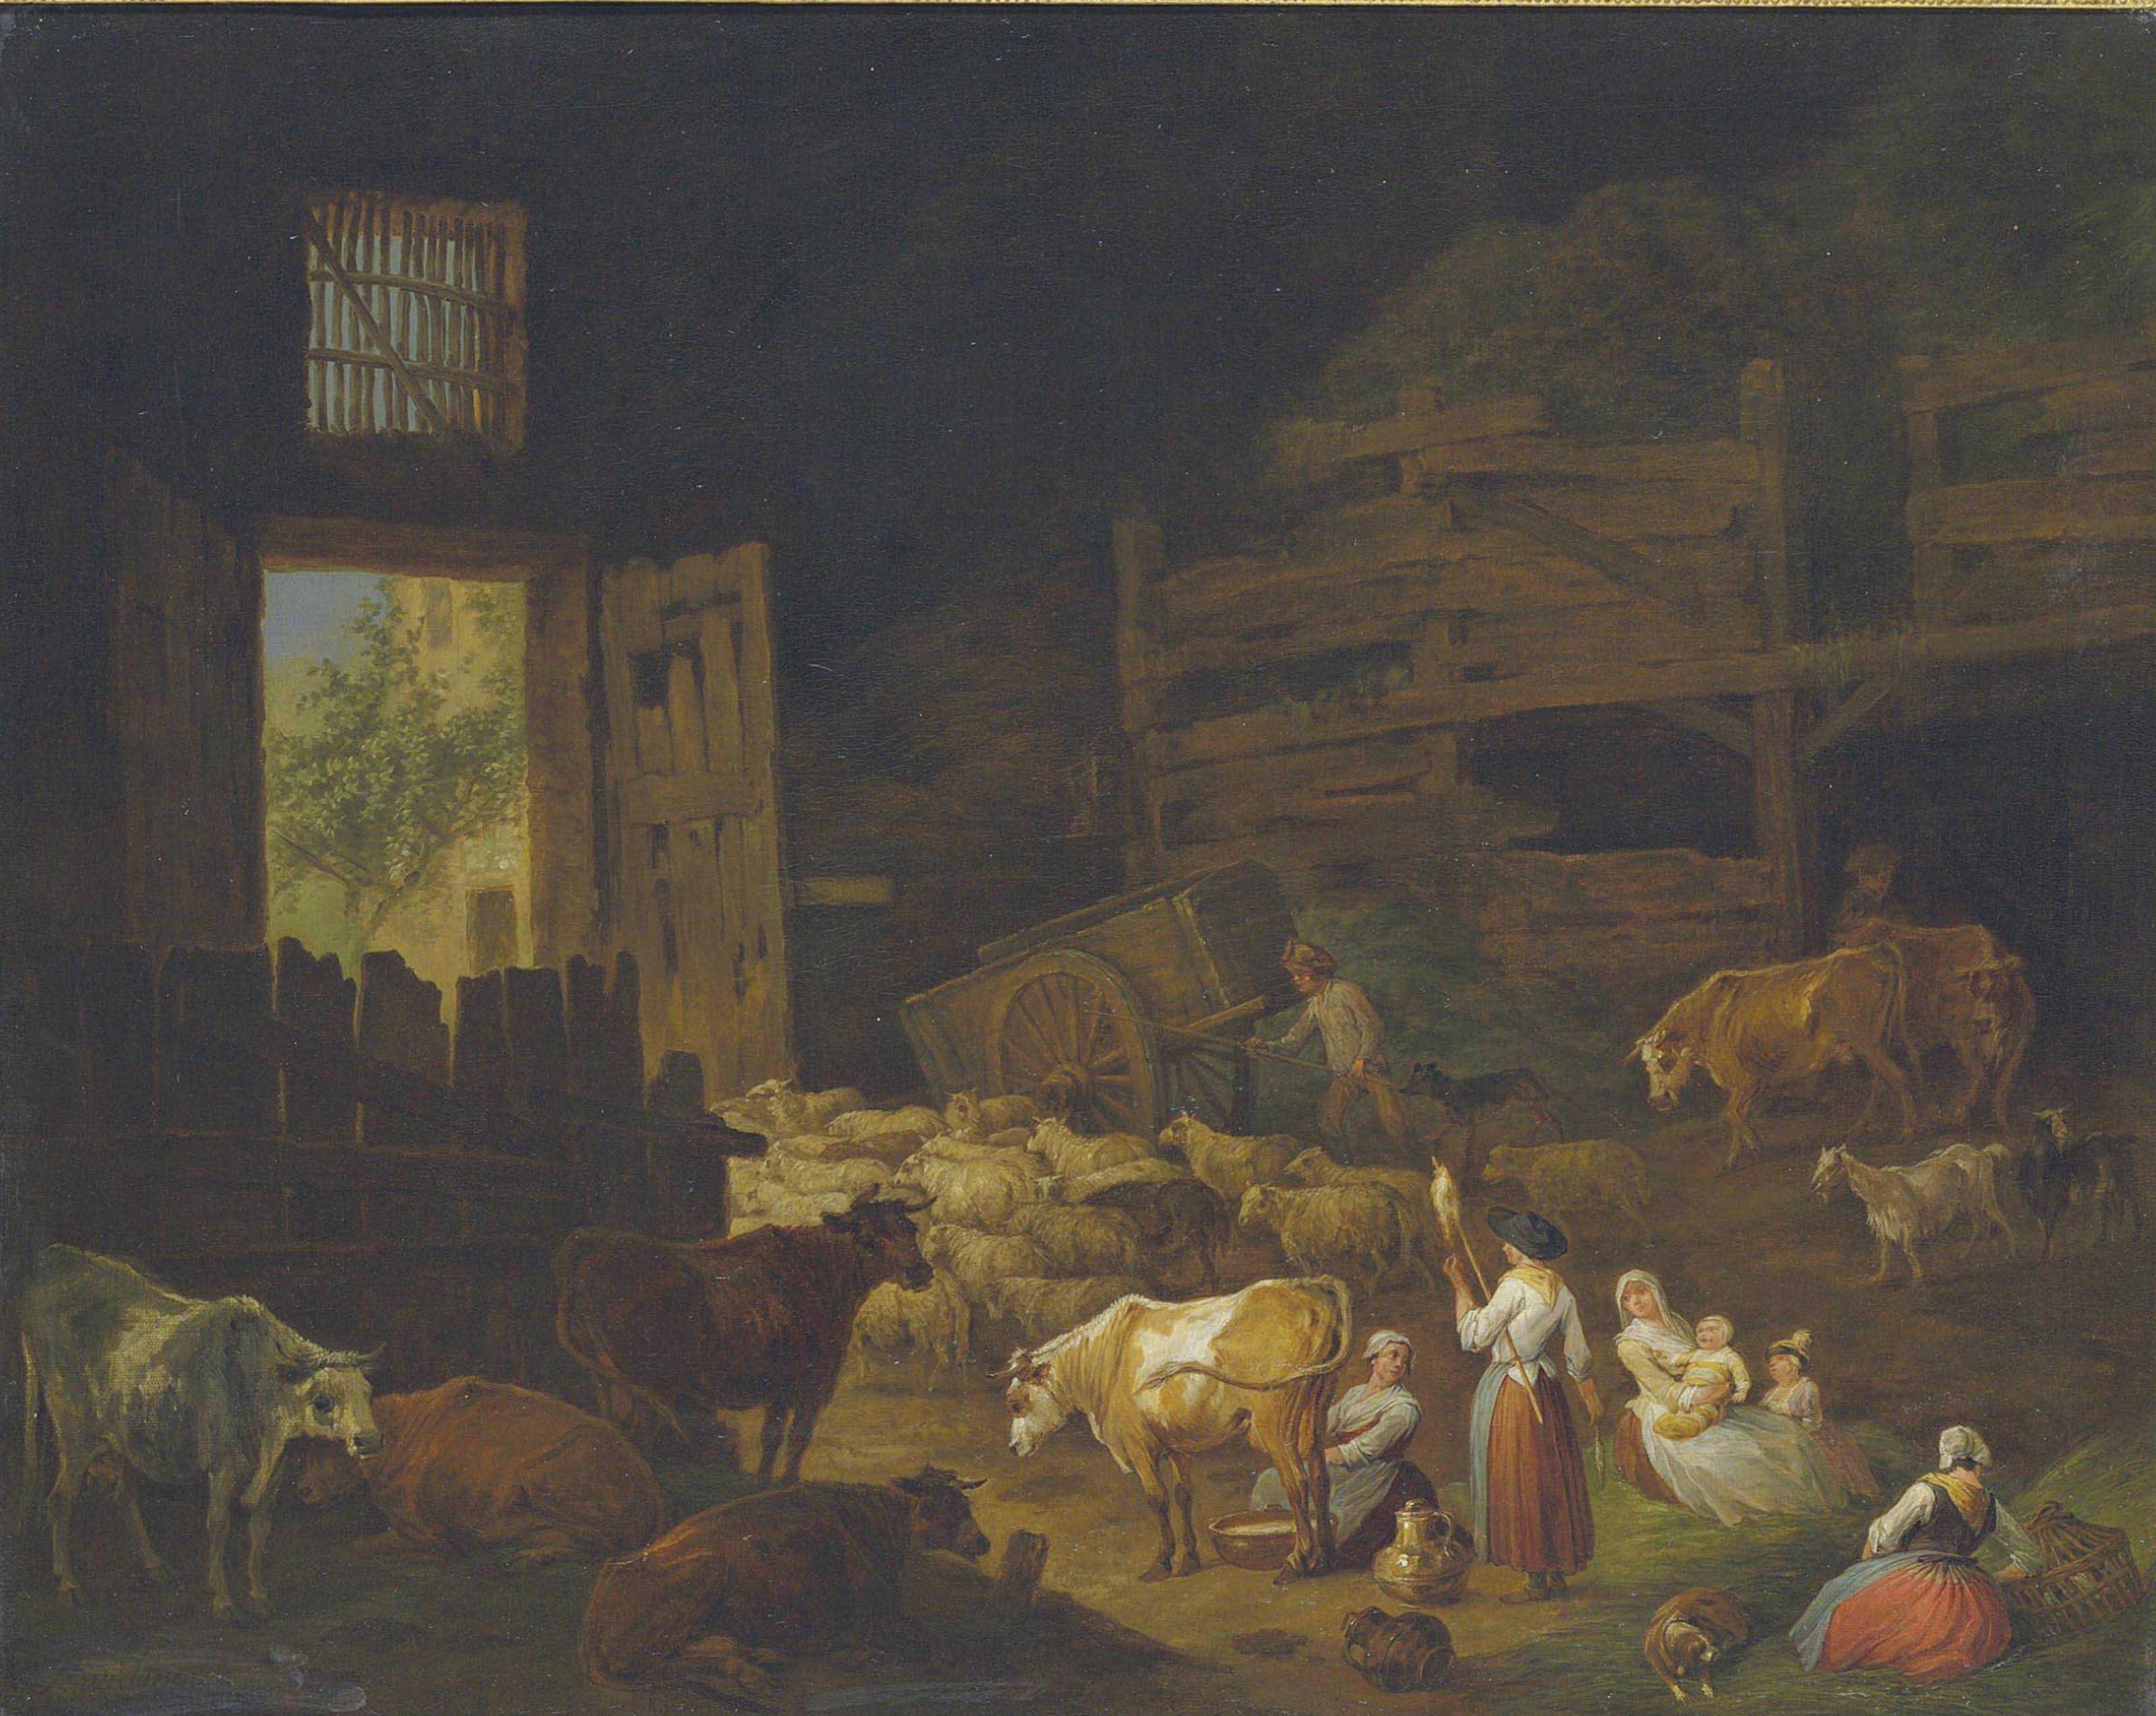 Cows, sheep, and other animals in a barn interior, with peasants resting in the foreground